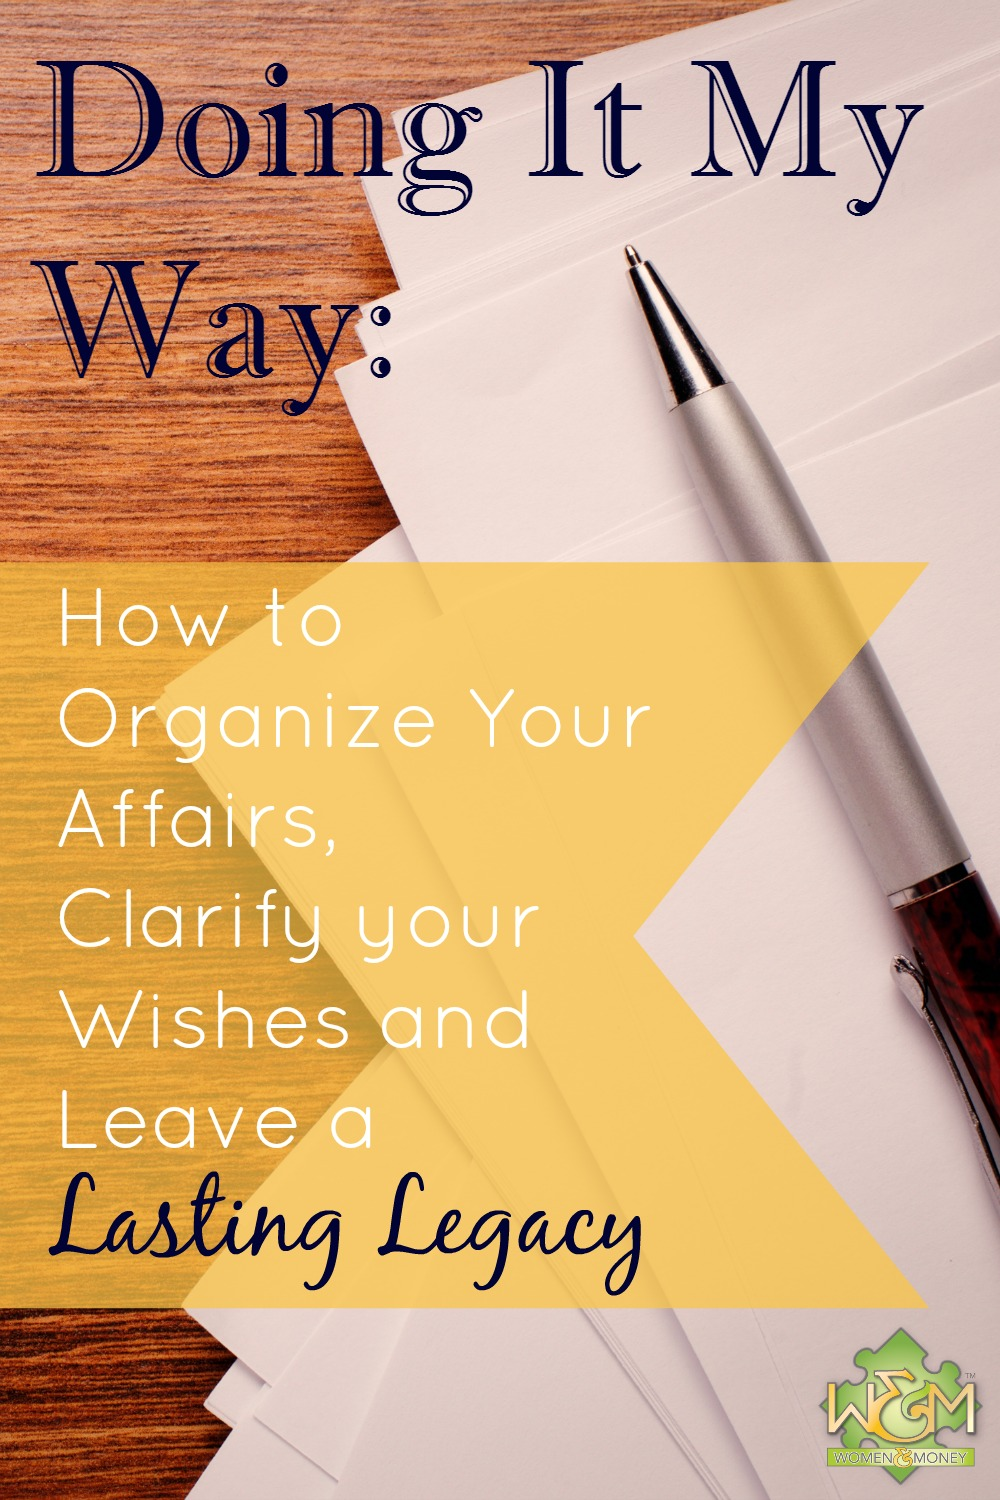 How to organize your affairs, clarify your wishes and leave a lasting legacy.